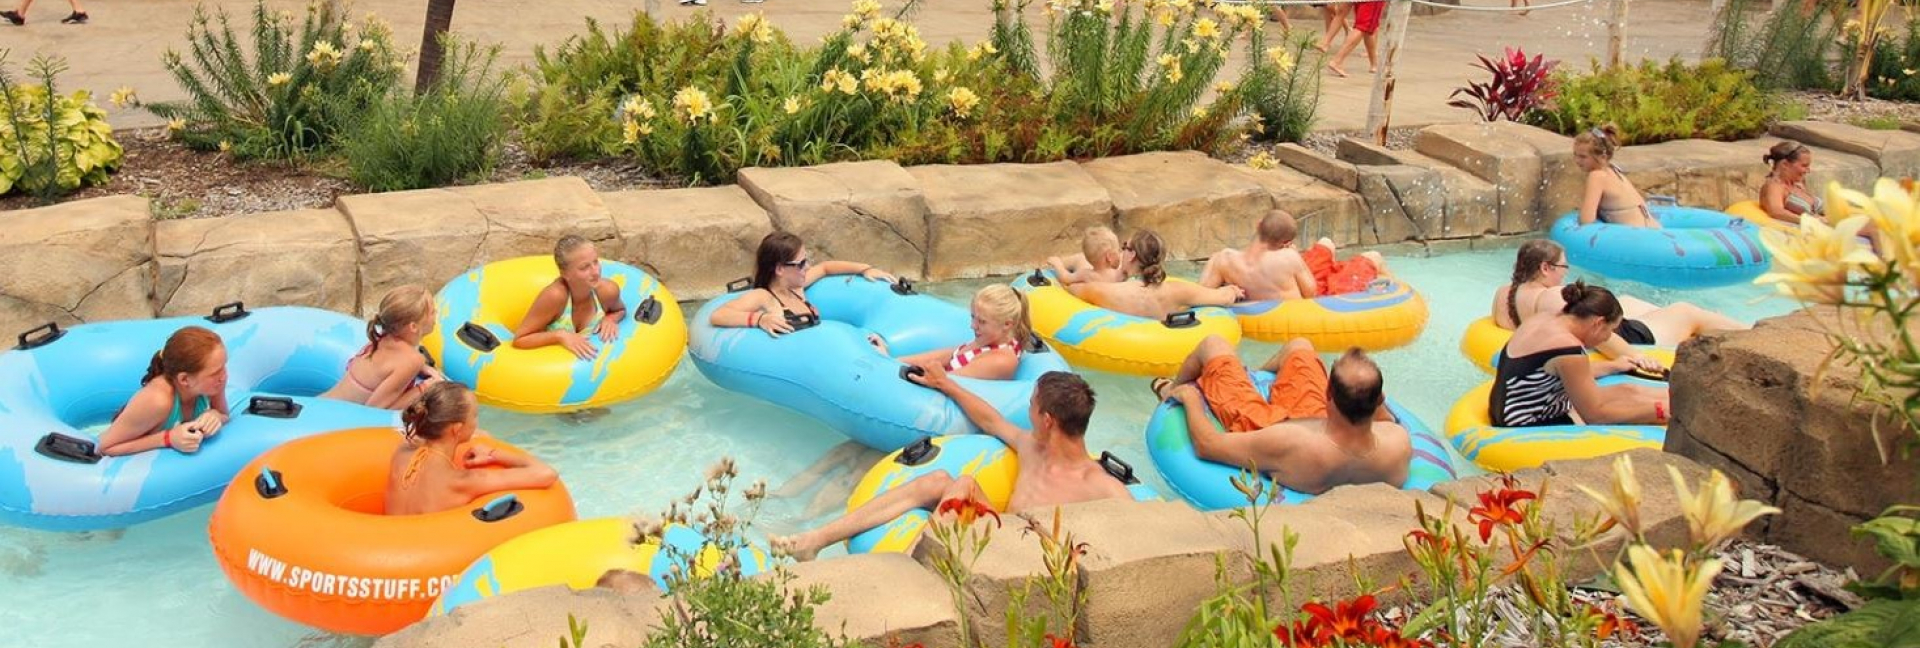 Lost Island Waterpark Lazy River